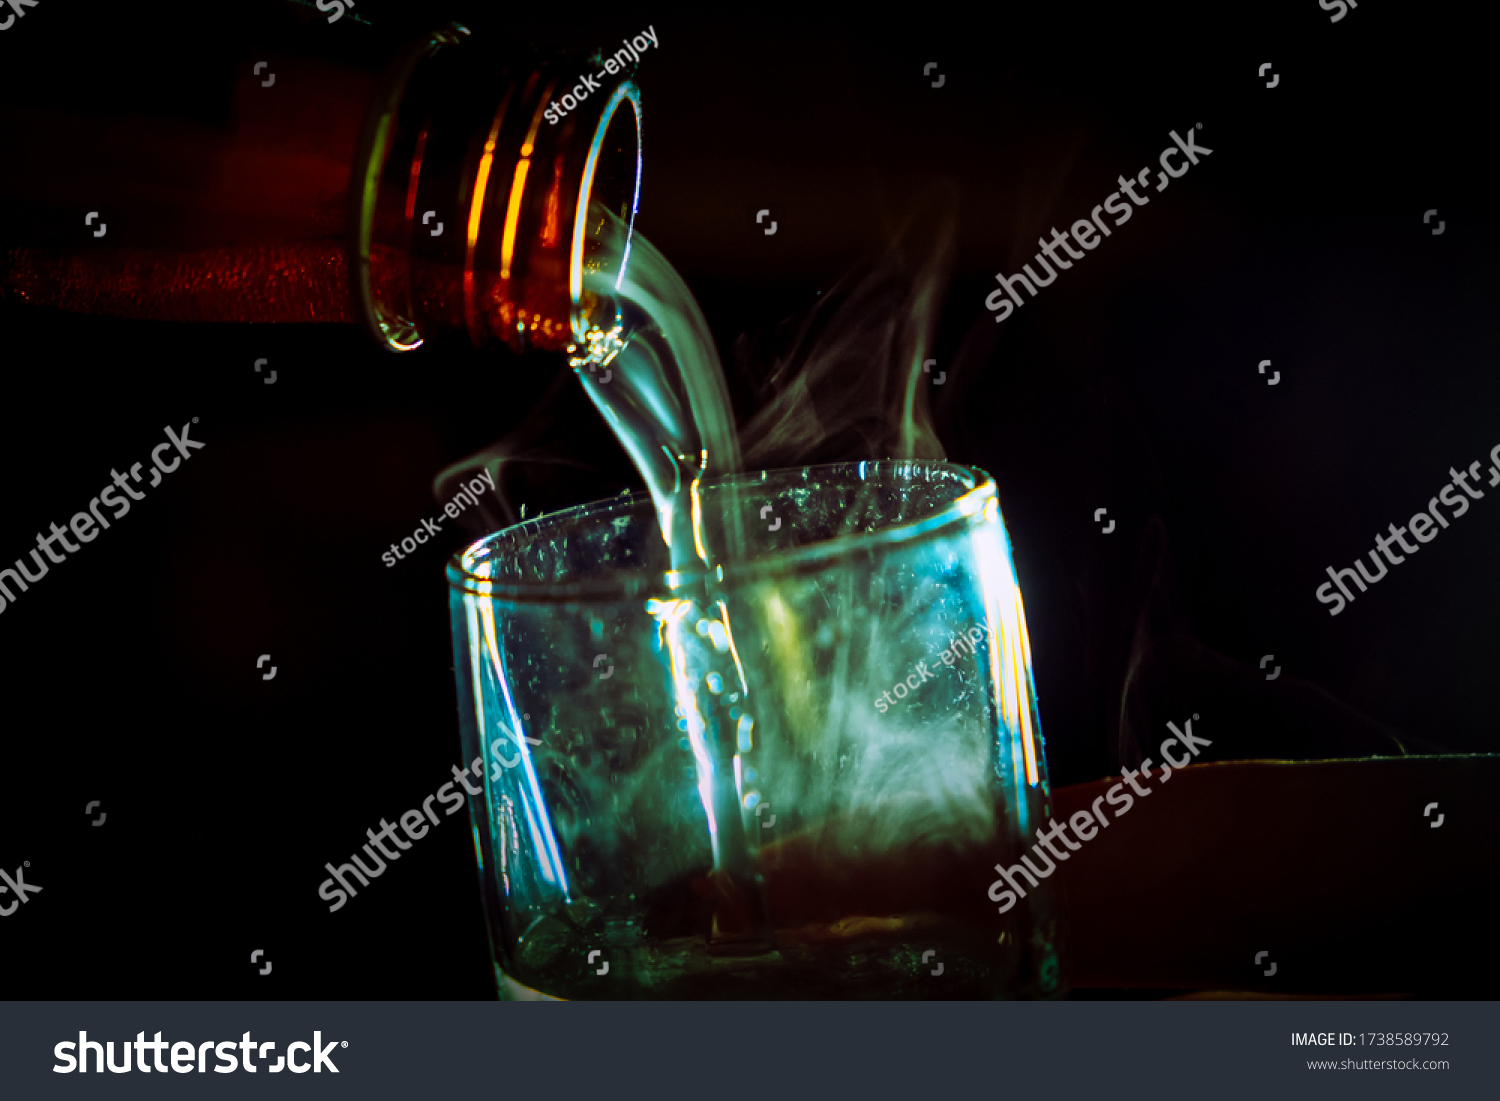 stock-photo-the-bartender-or-maybe-satan